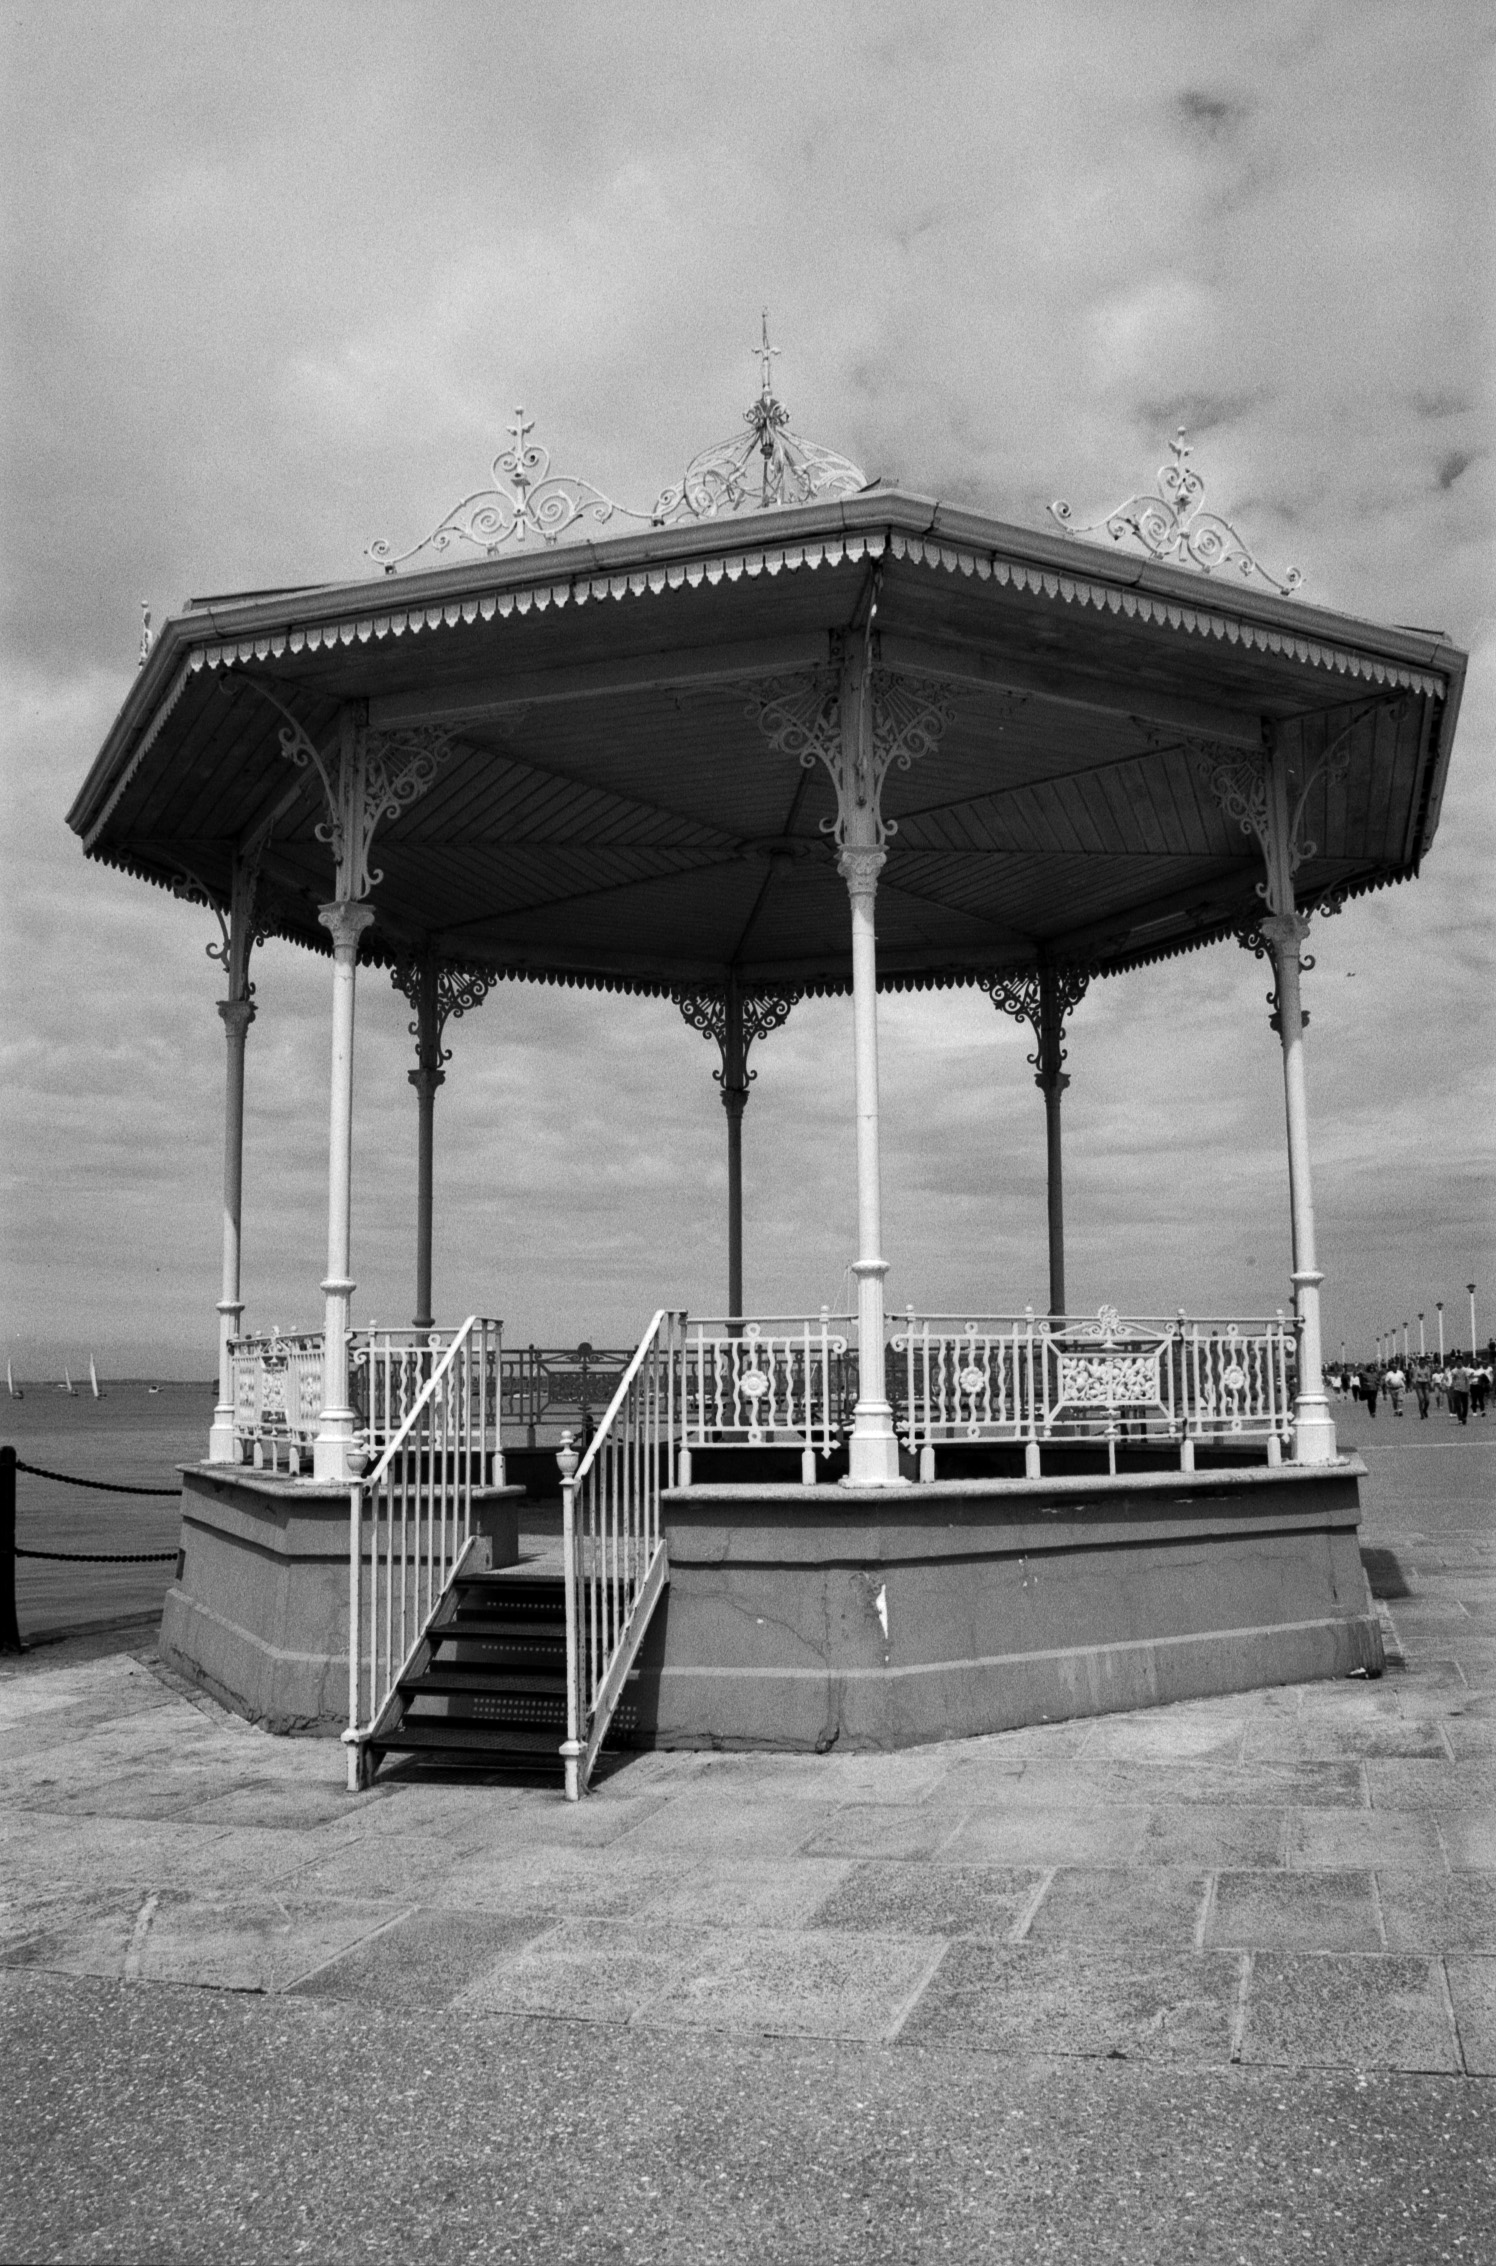 Film: Ilford Pan F+ 50  Camera: Canon EOS 300  Location: Dun Laoghaire, Co. Dublin, Ireland